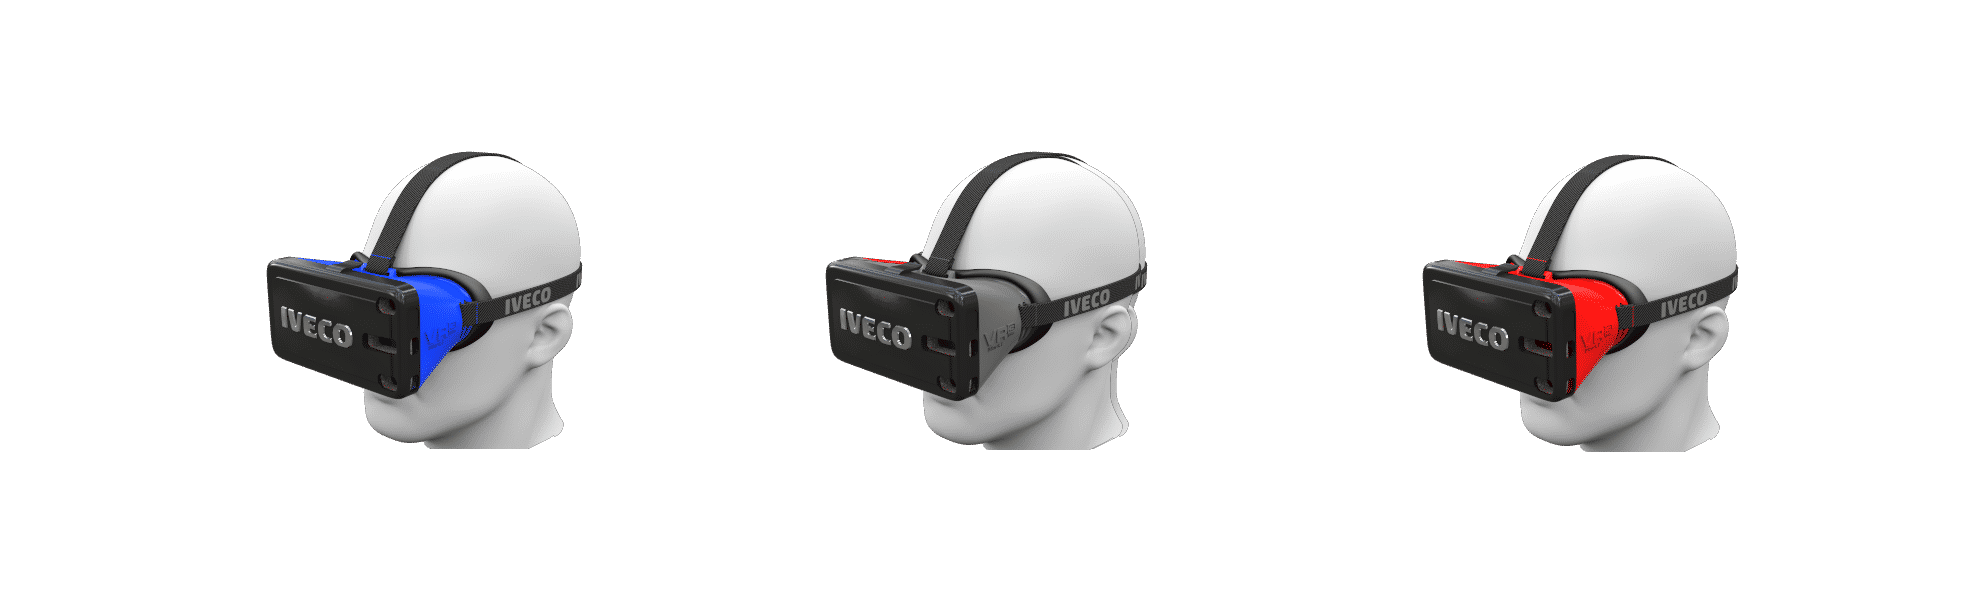 custom-branded-vr-headsets